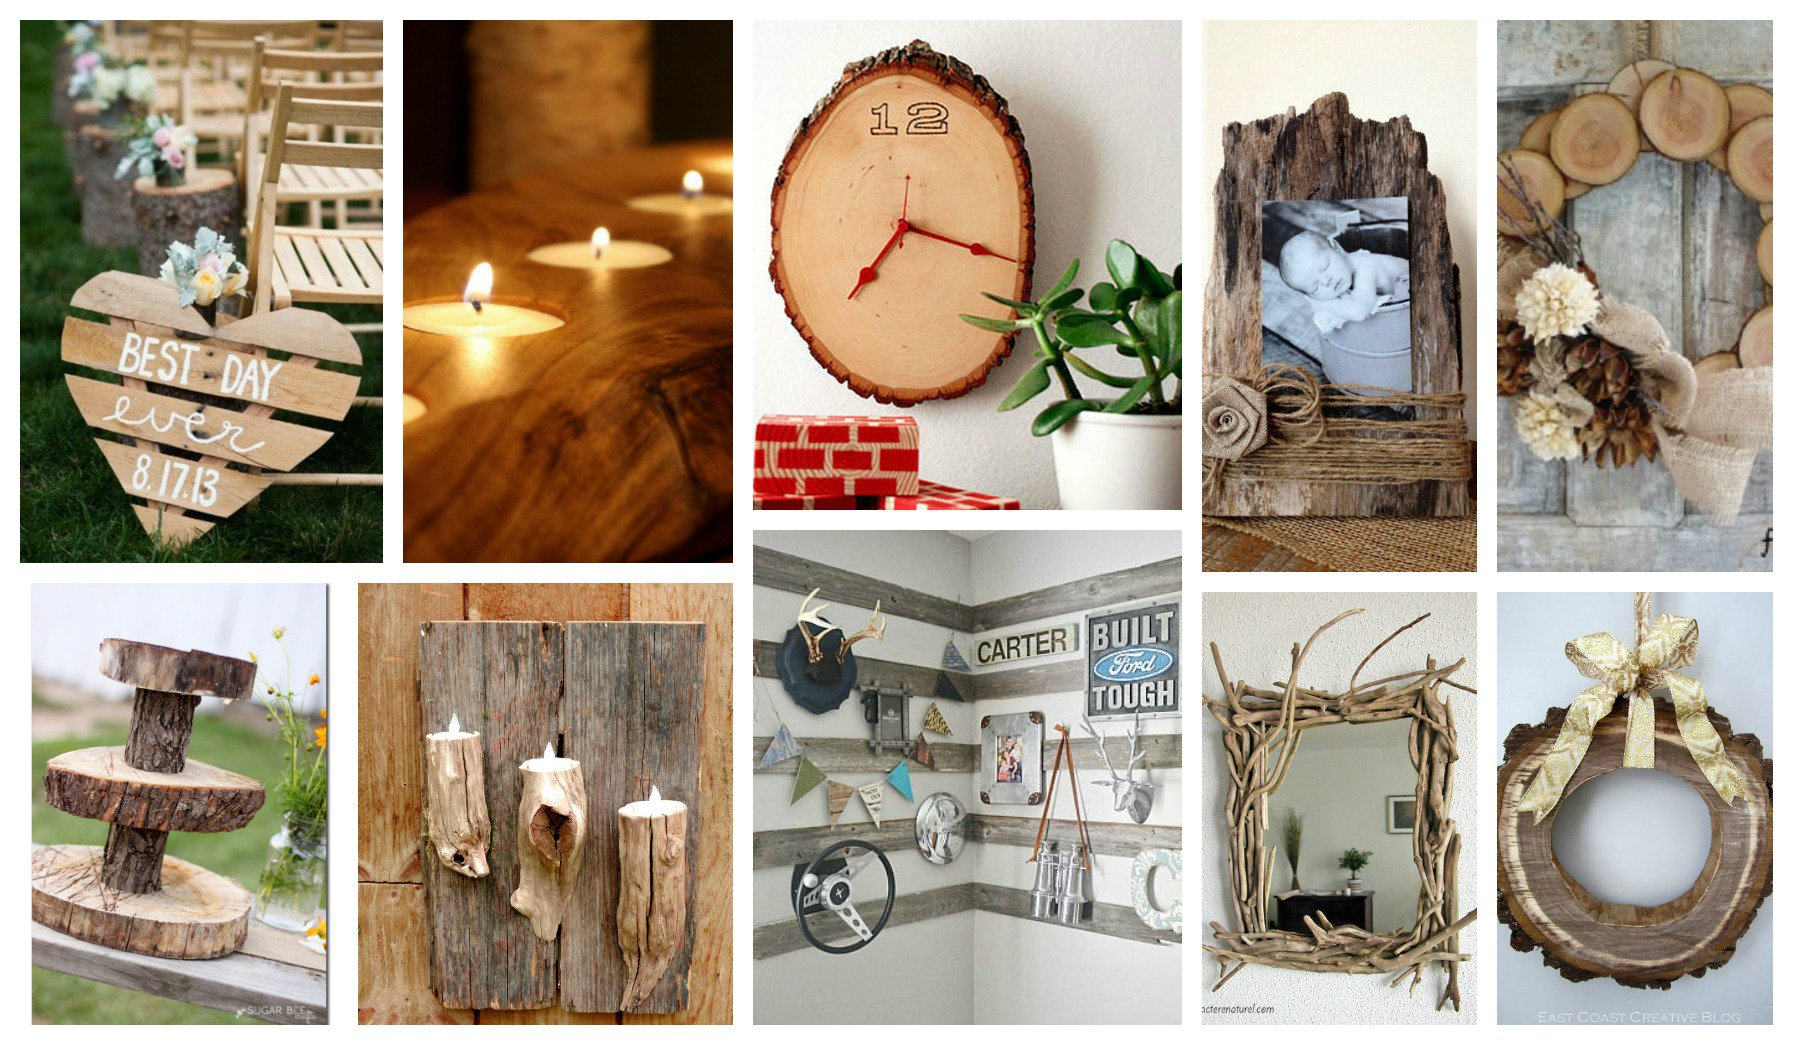 Stupendous diy rustic wood decor that will make you say for Rustic home decor and woodworking